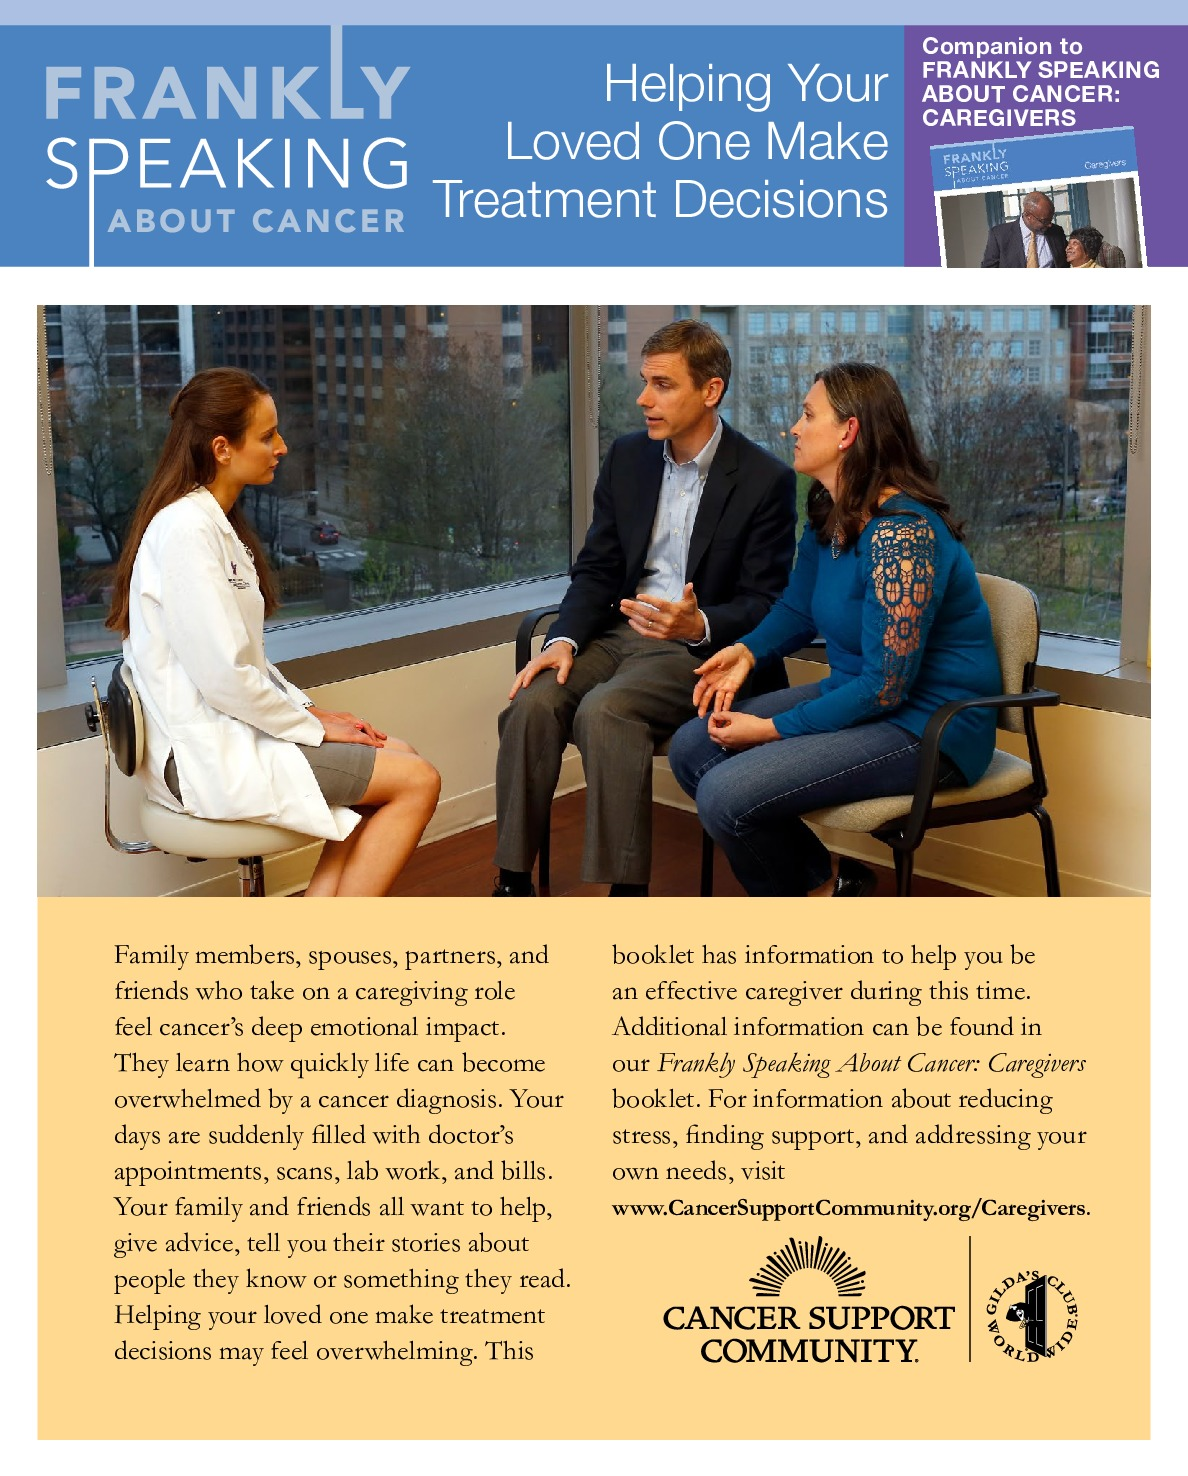 Helping Your Loved One Make Treatment Decisions